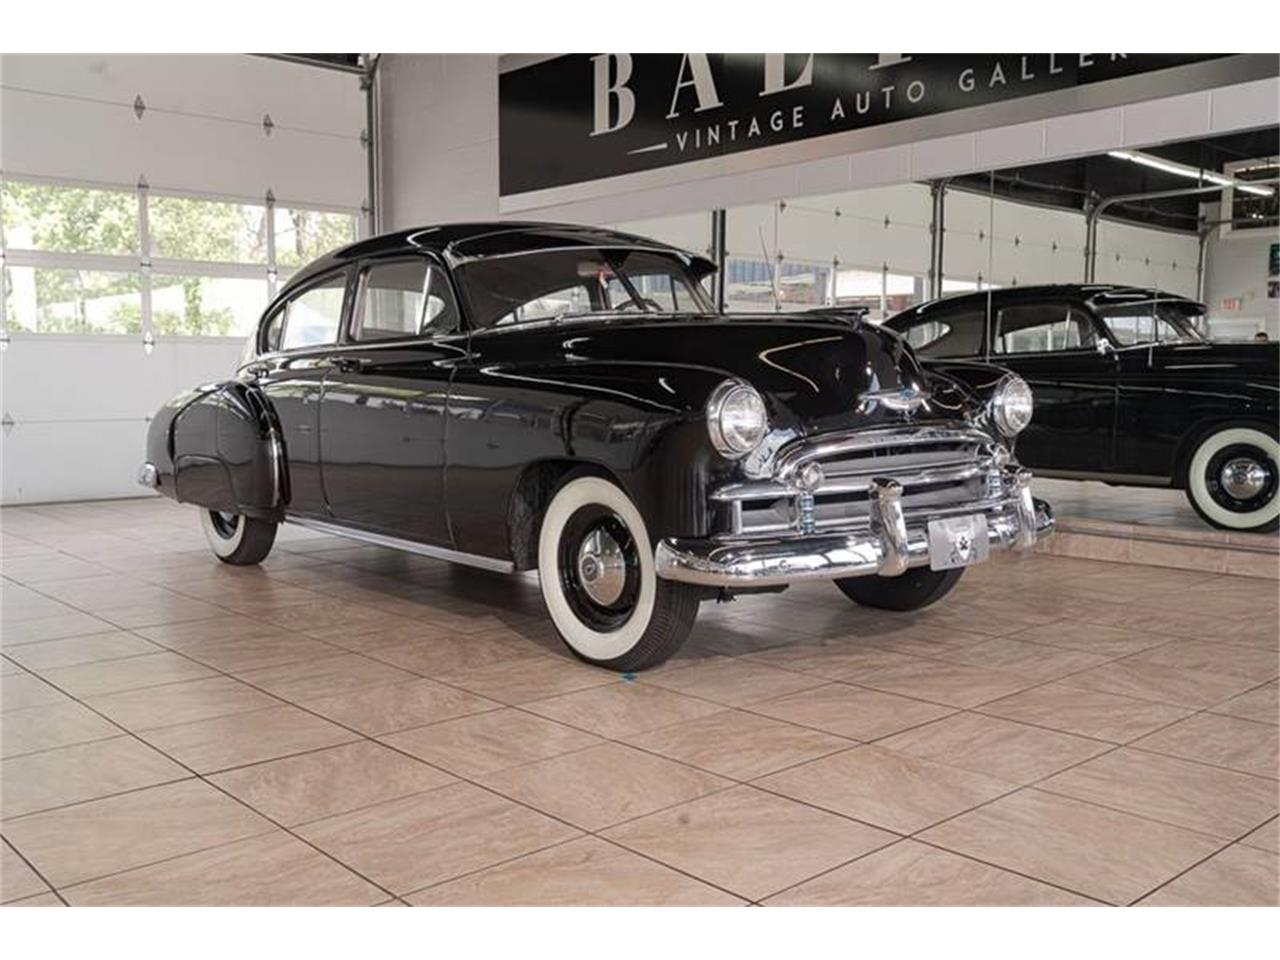 1950 Chevrolet Fleetline for sale in St. Charles, IL